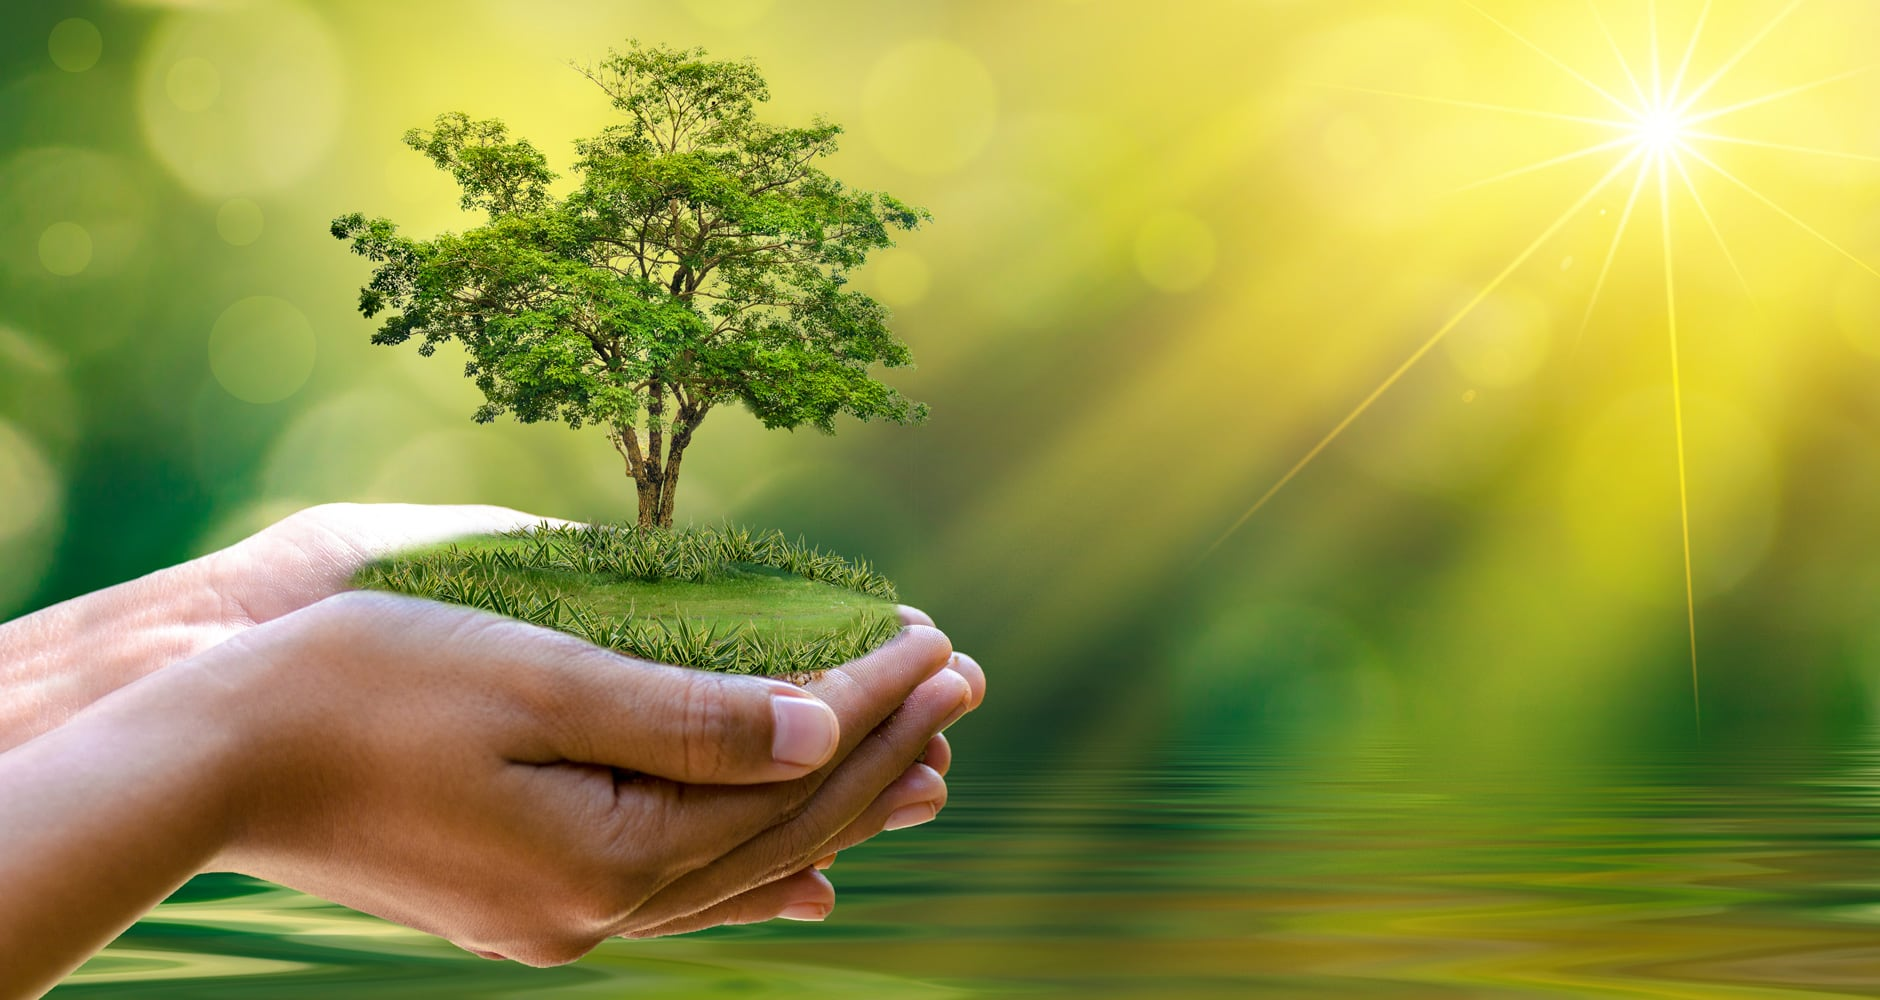 Earth Day 2021: What and When is Earth Day? - Farmers' Almanac